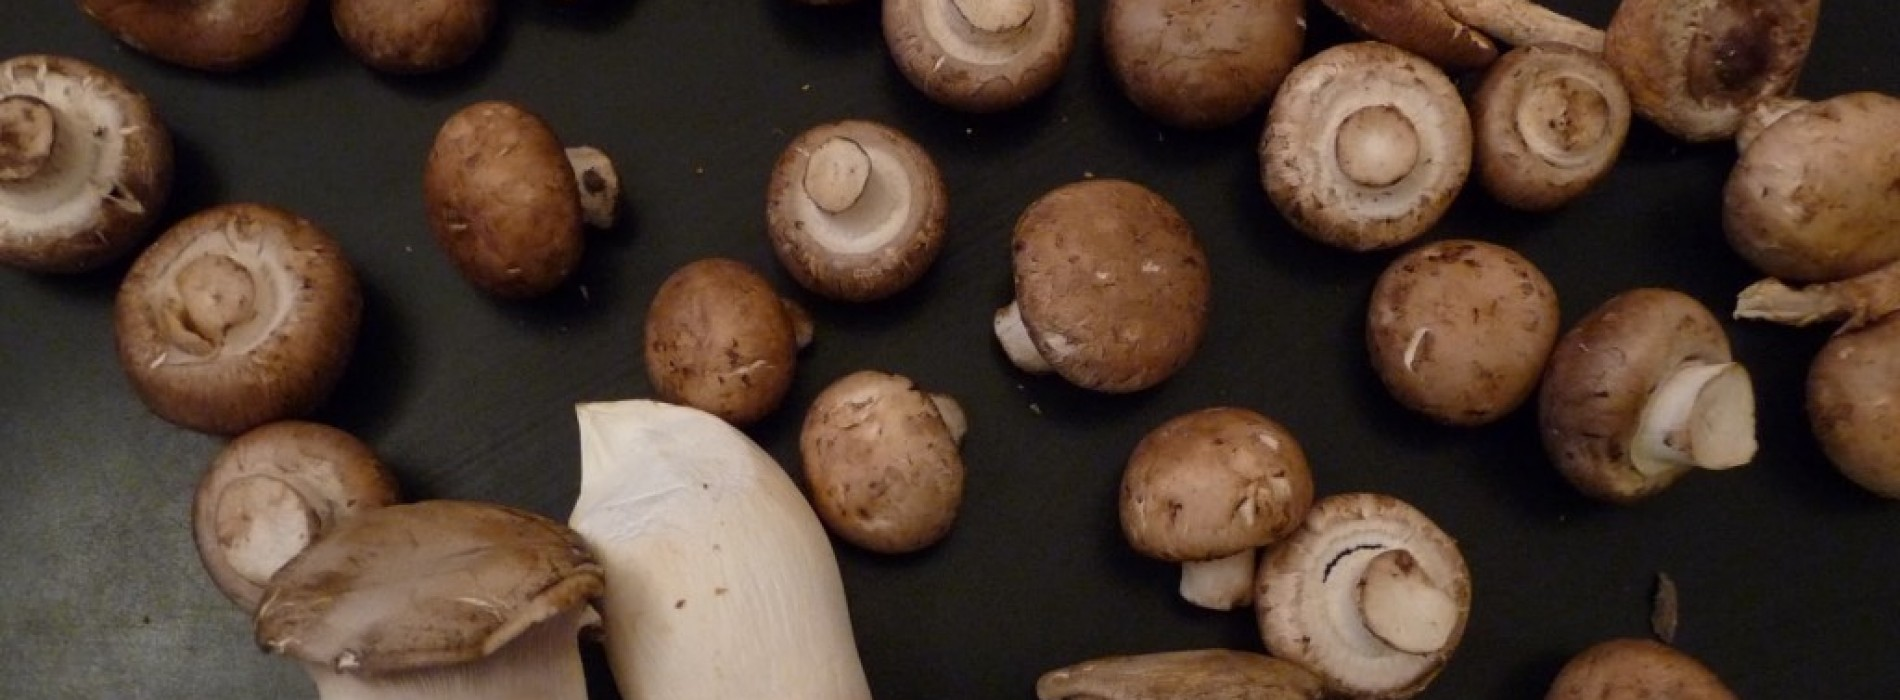 What's So Great About Mushrooms?